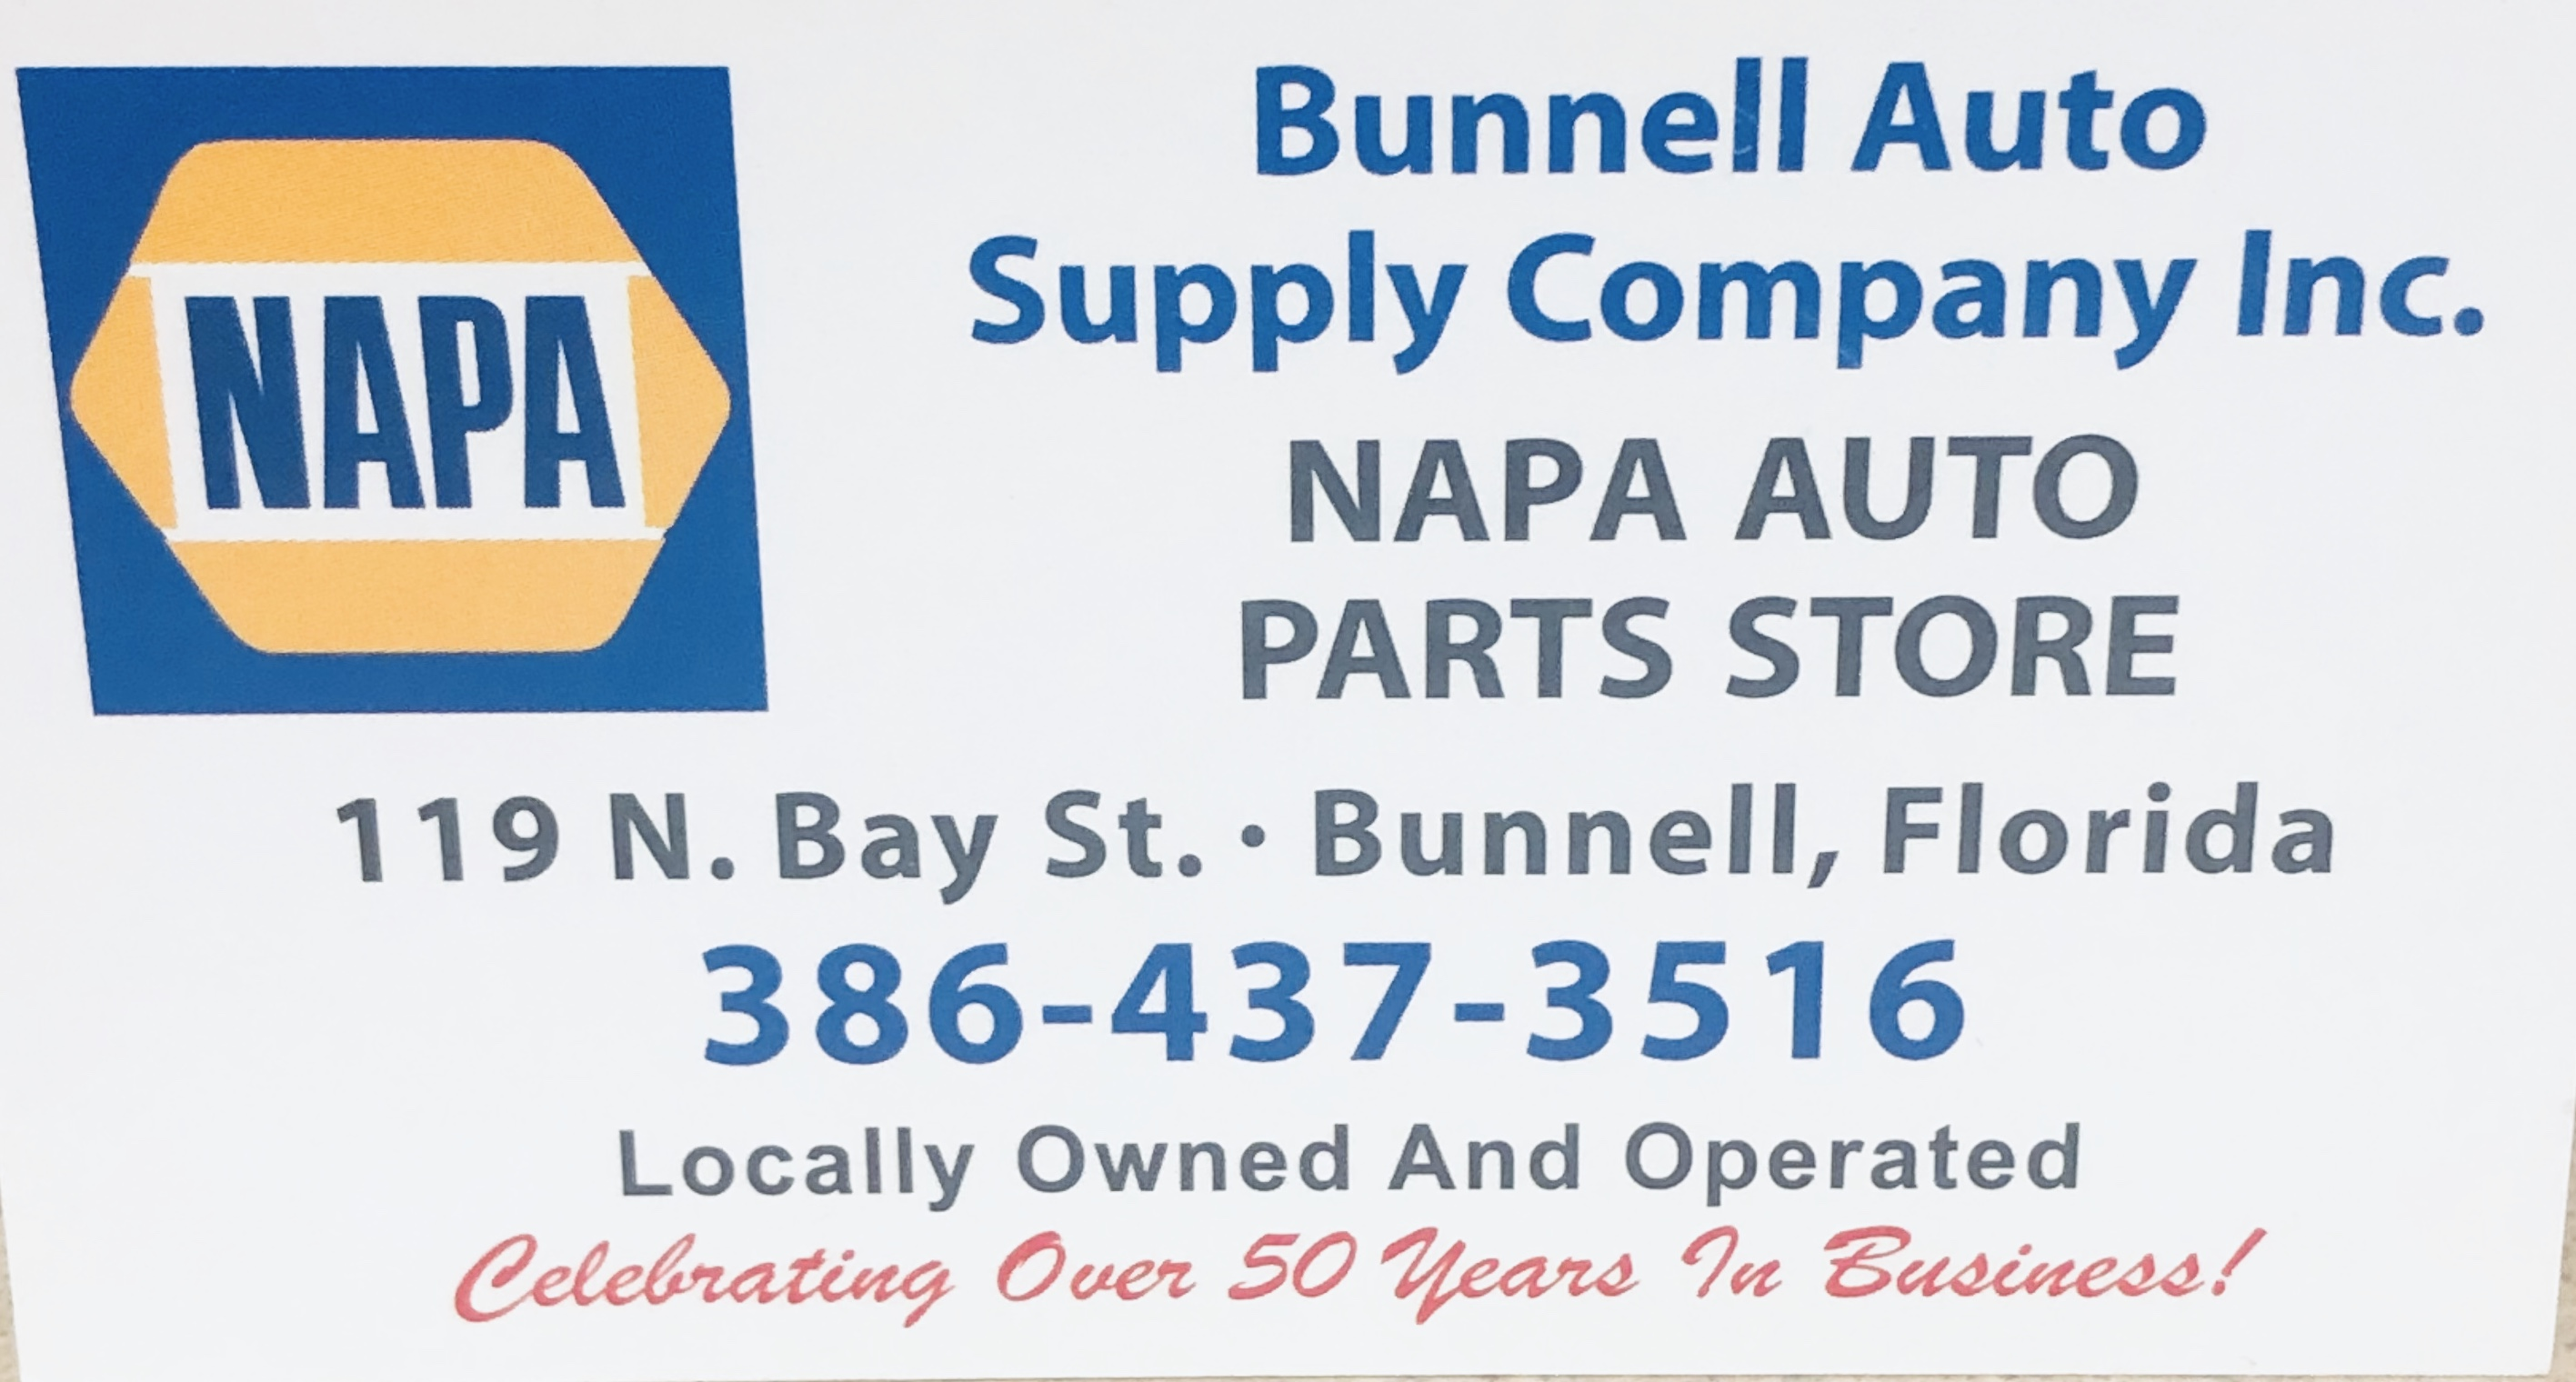 NAPA Bunnell Auto Supply Company